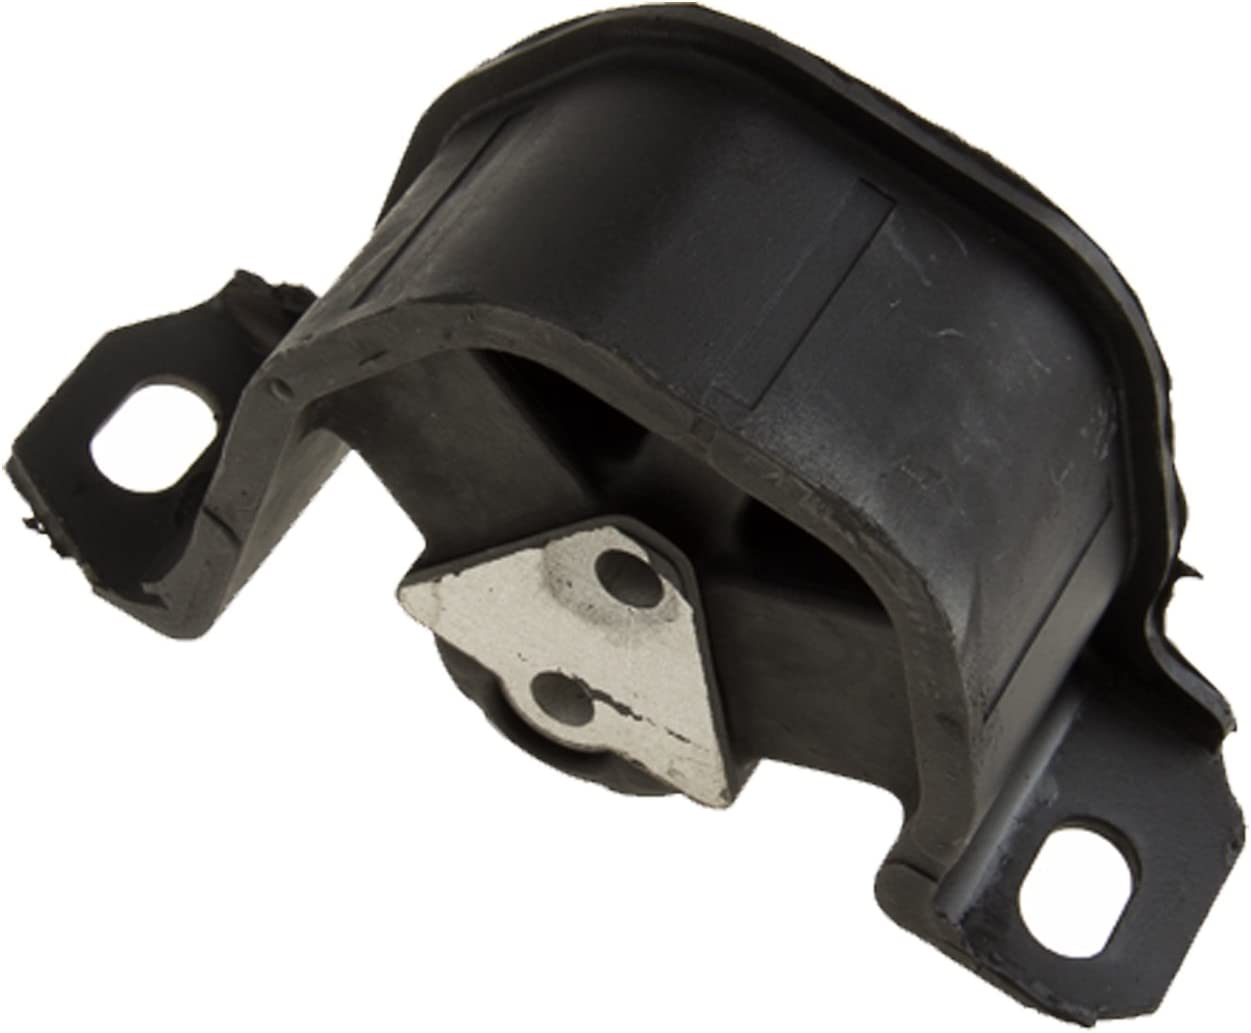 For Saab 9-3 900 Manual Trans Front /& Rear Lower Engine Motor Support Mounts Set